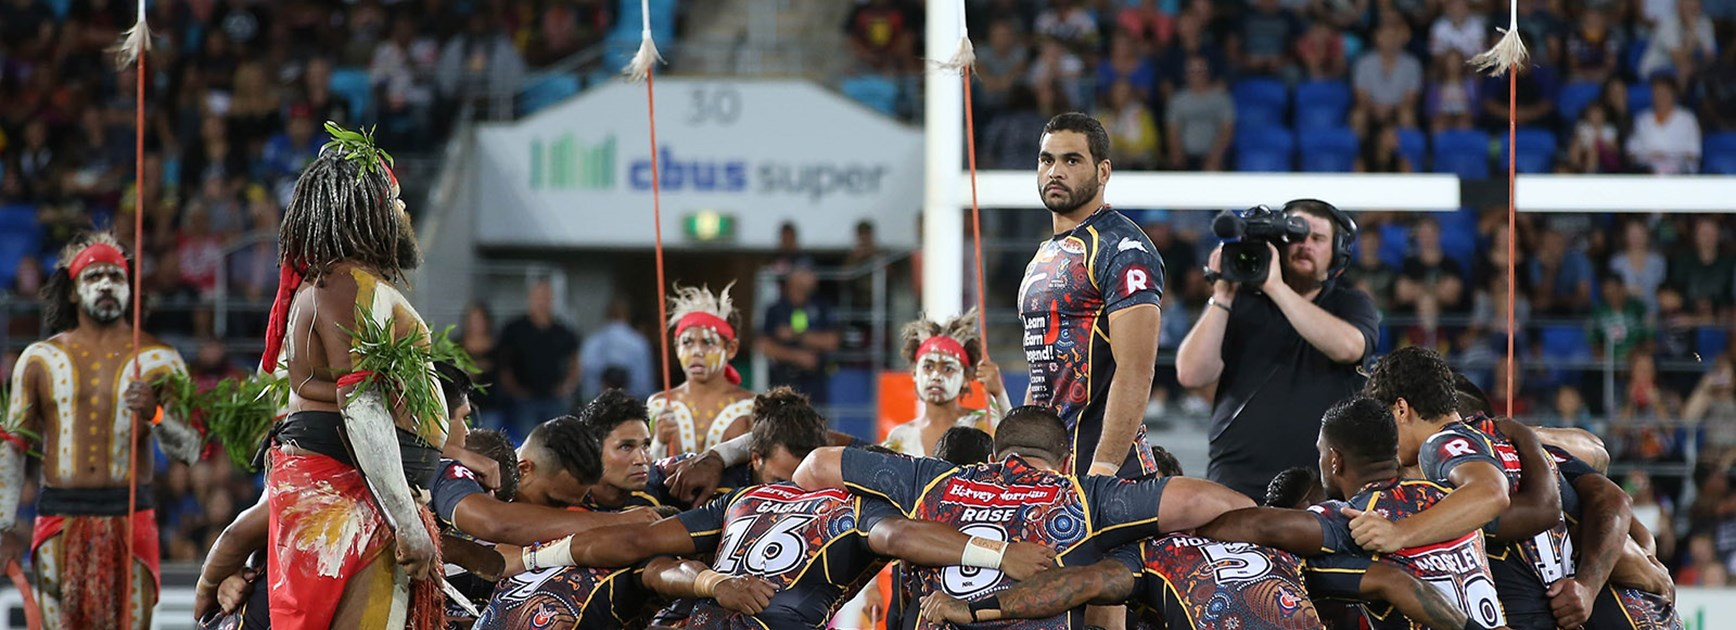 Greg Inglis and the Indigenous All Stars before the 2015 NRL All Stars game.